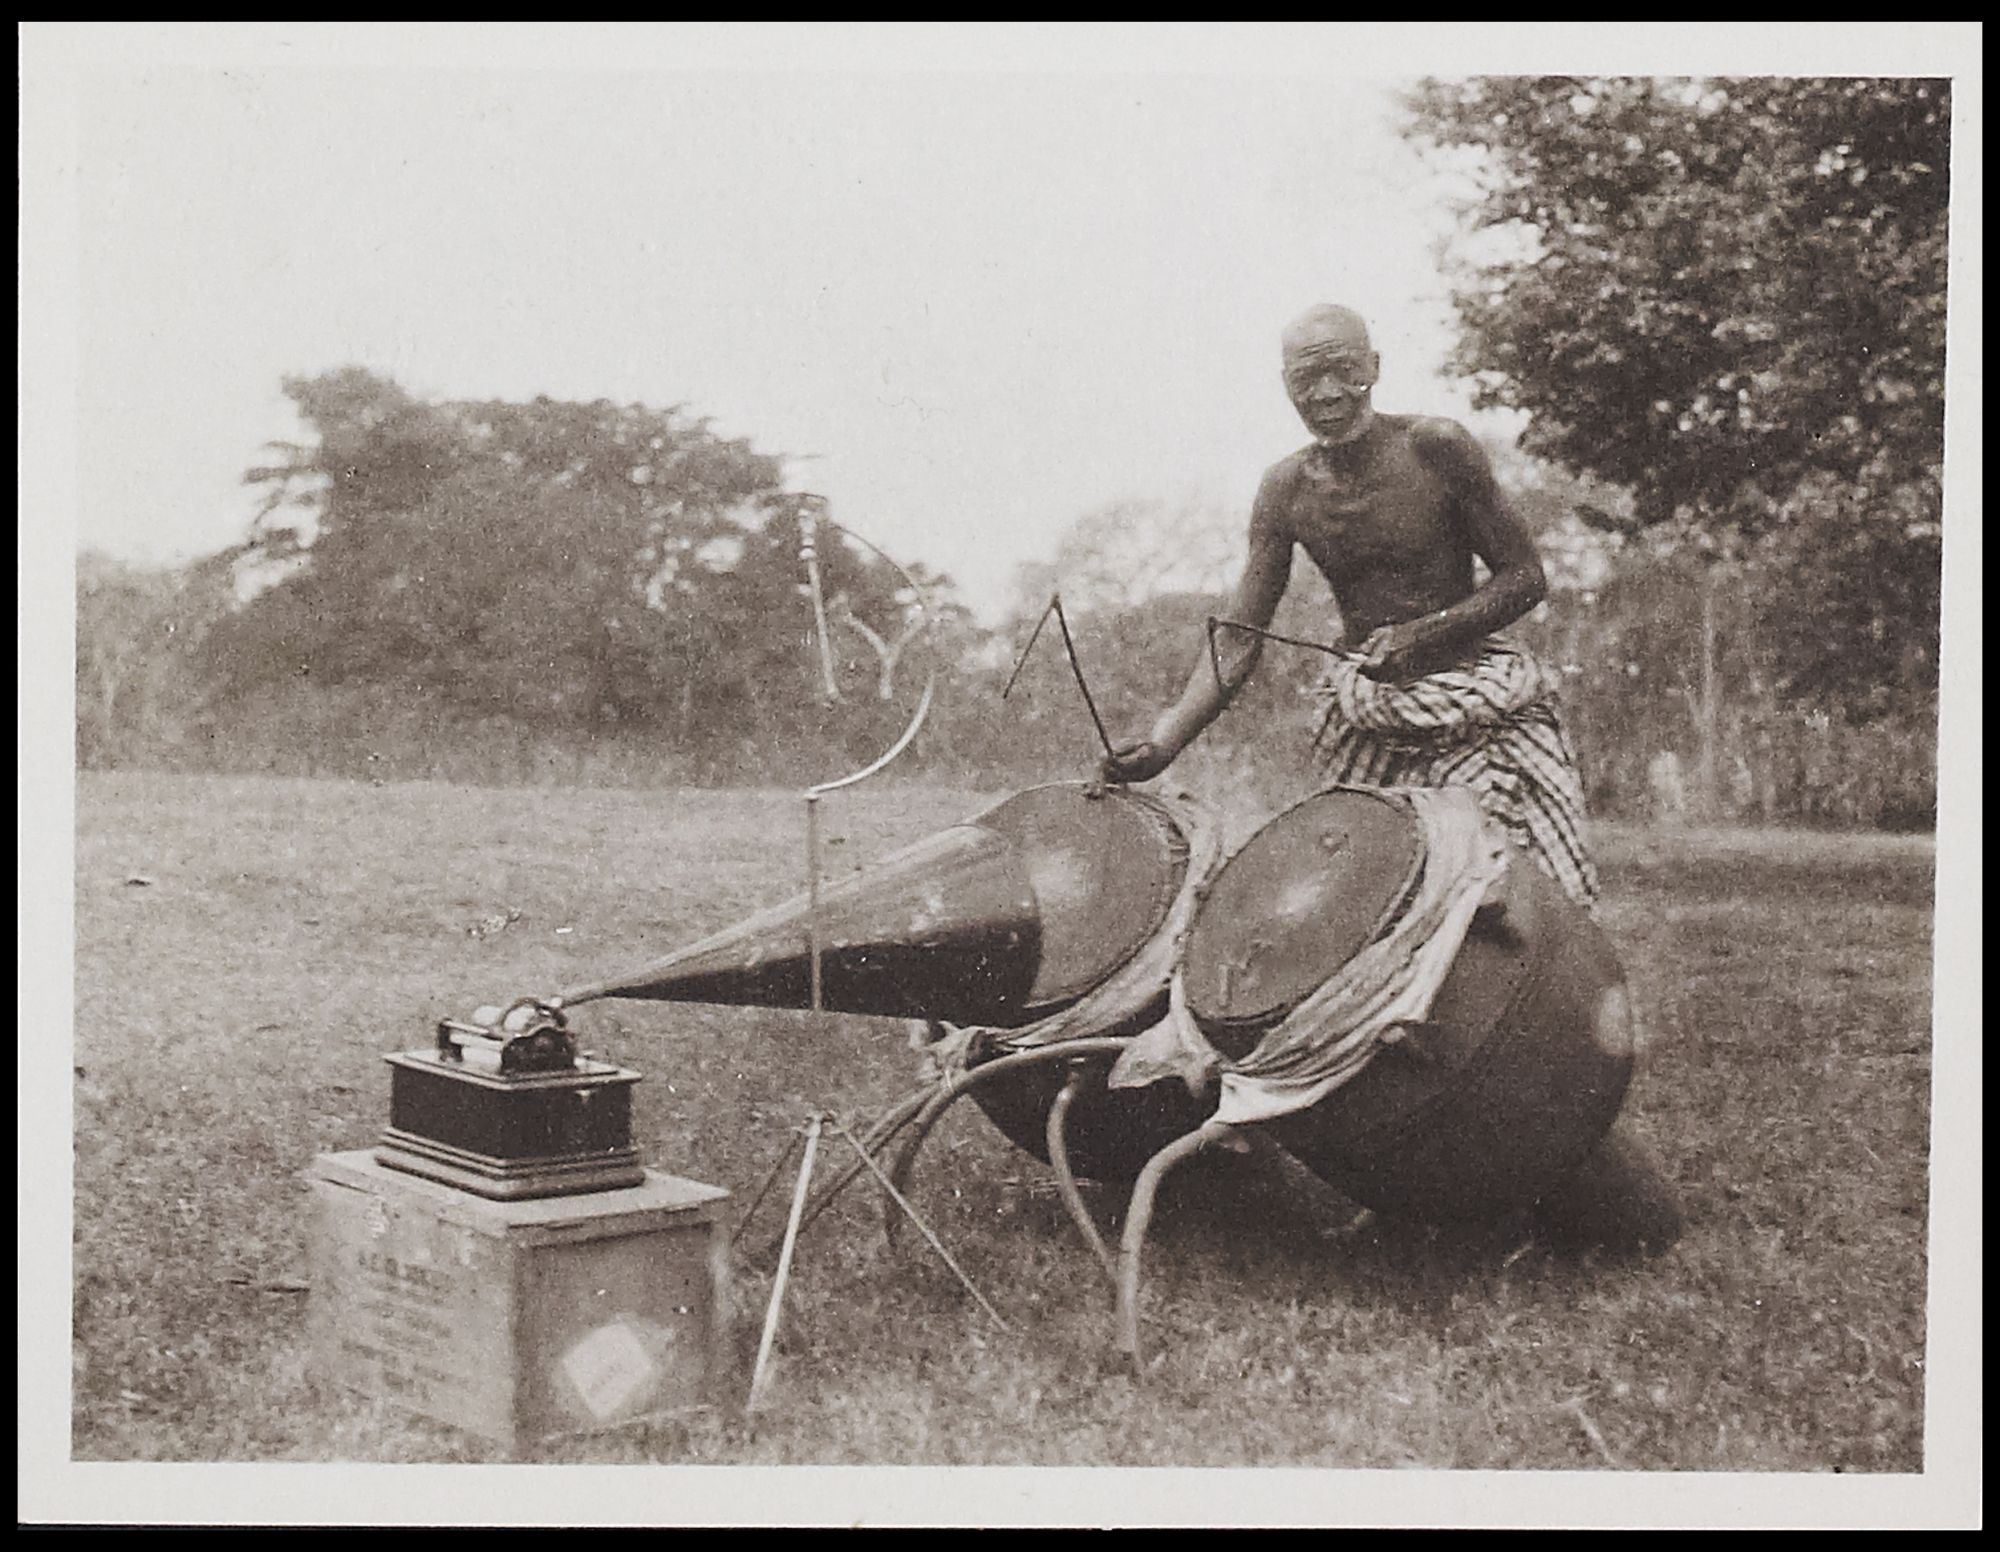 This picture shows Kofi Jatto performing phrases of text on the Asante atumpan drums in Ghana in 1921.